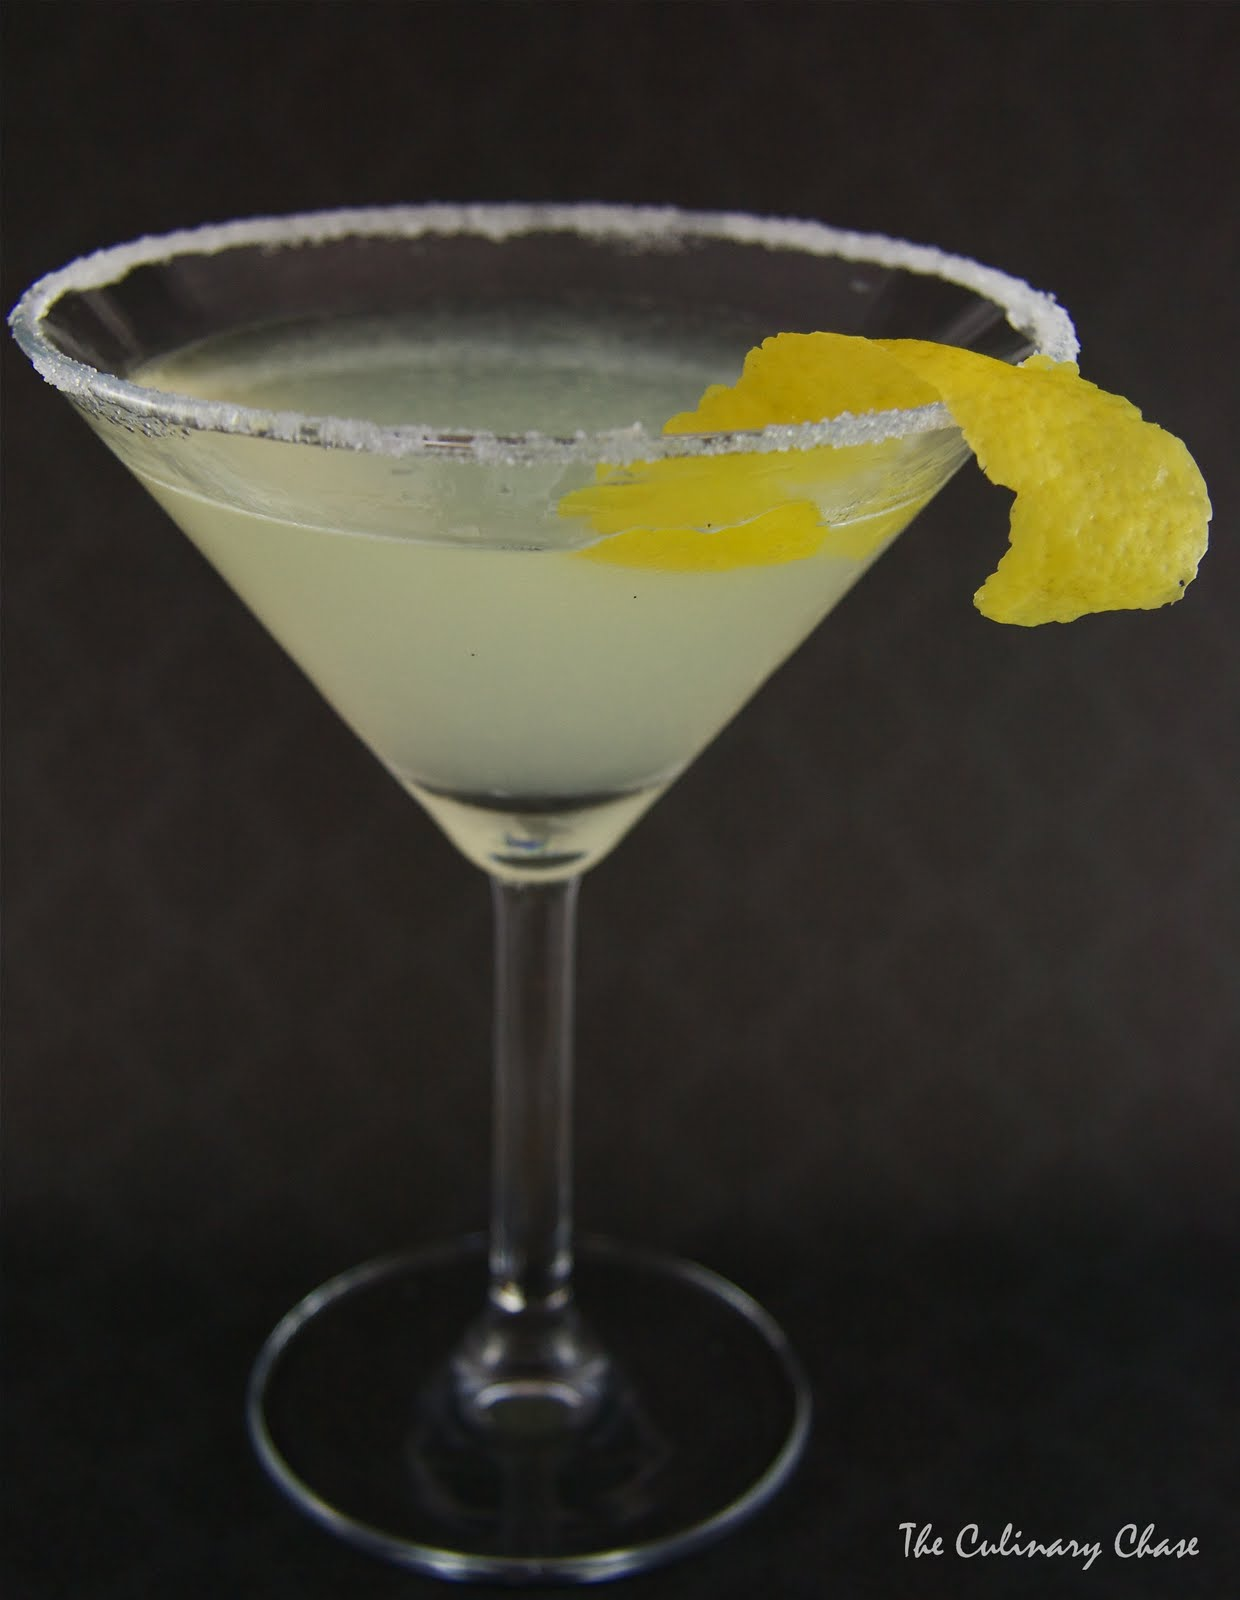 Lemon Drop Martini infused with Lavender Syrup - The Culinary Chase